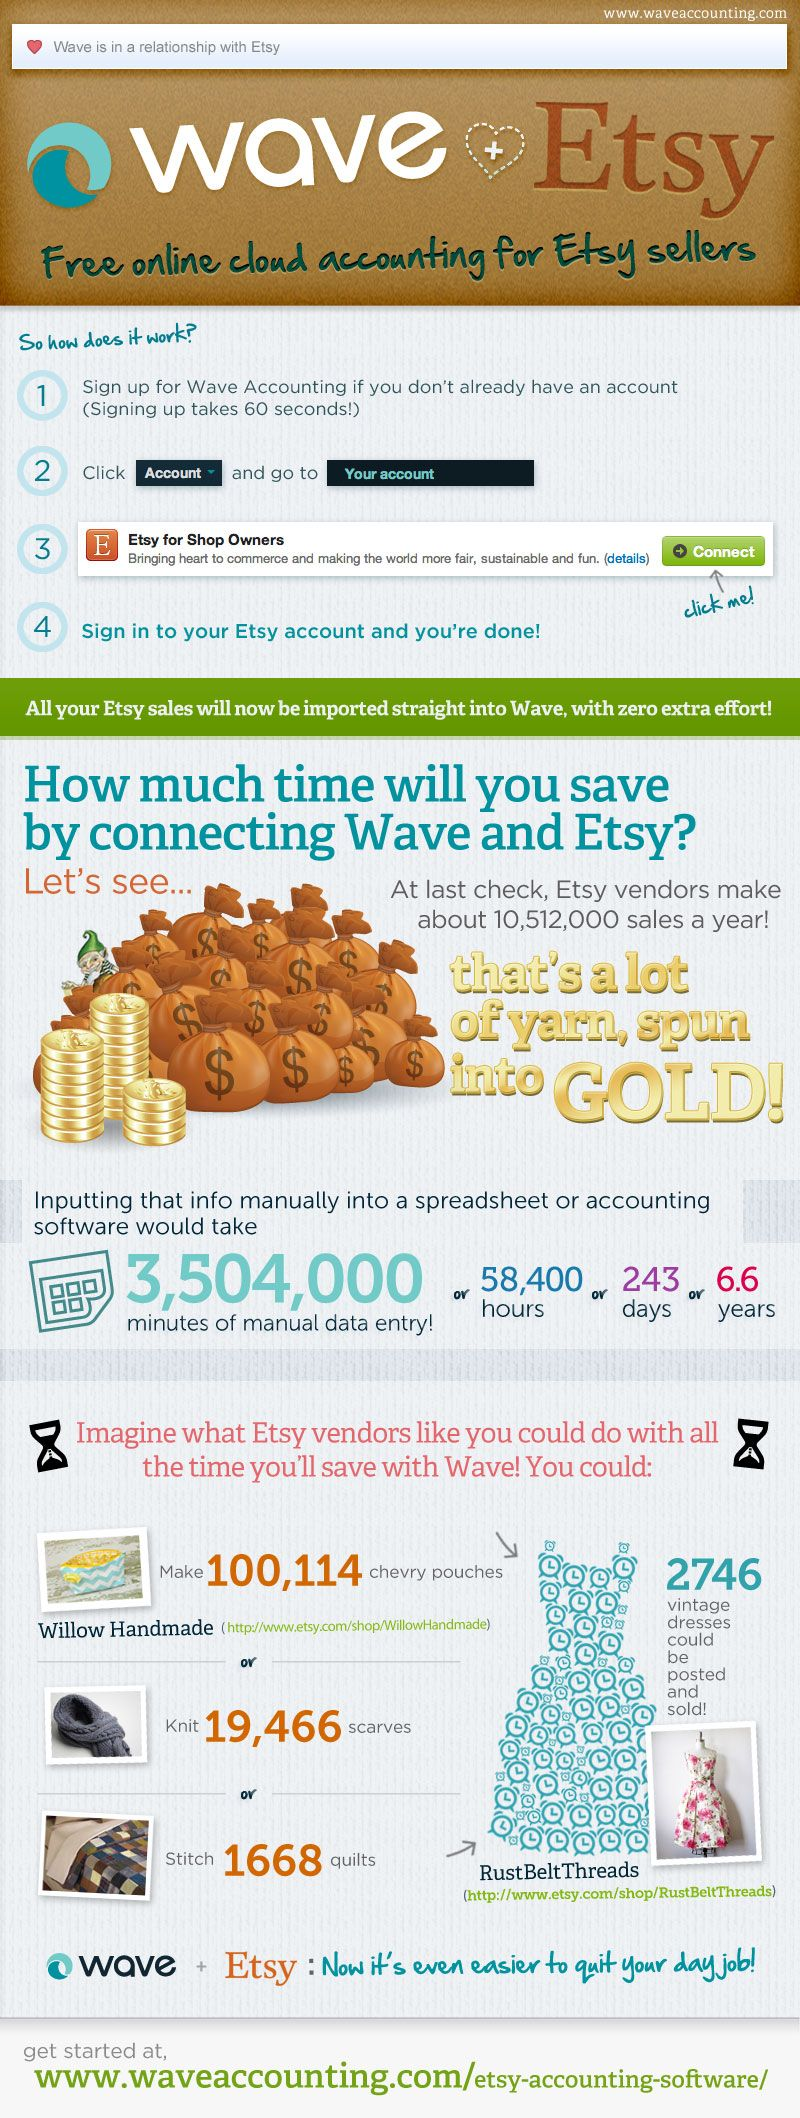 Etsy is in a Relationship with Wave Accounting! - Wave Accounting ...